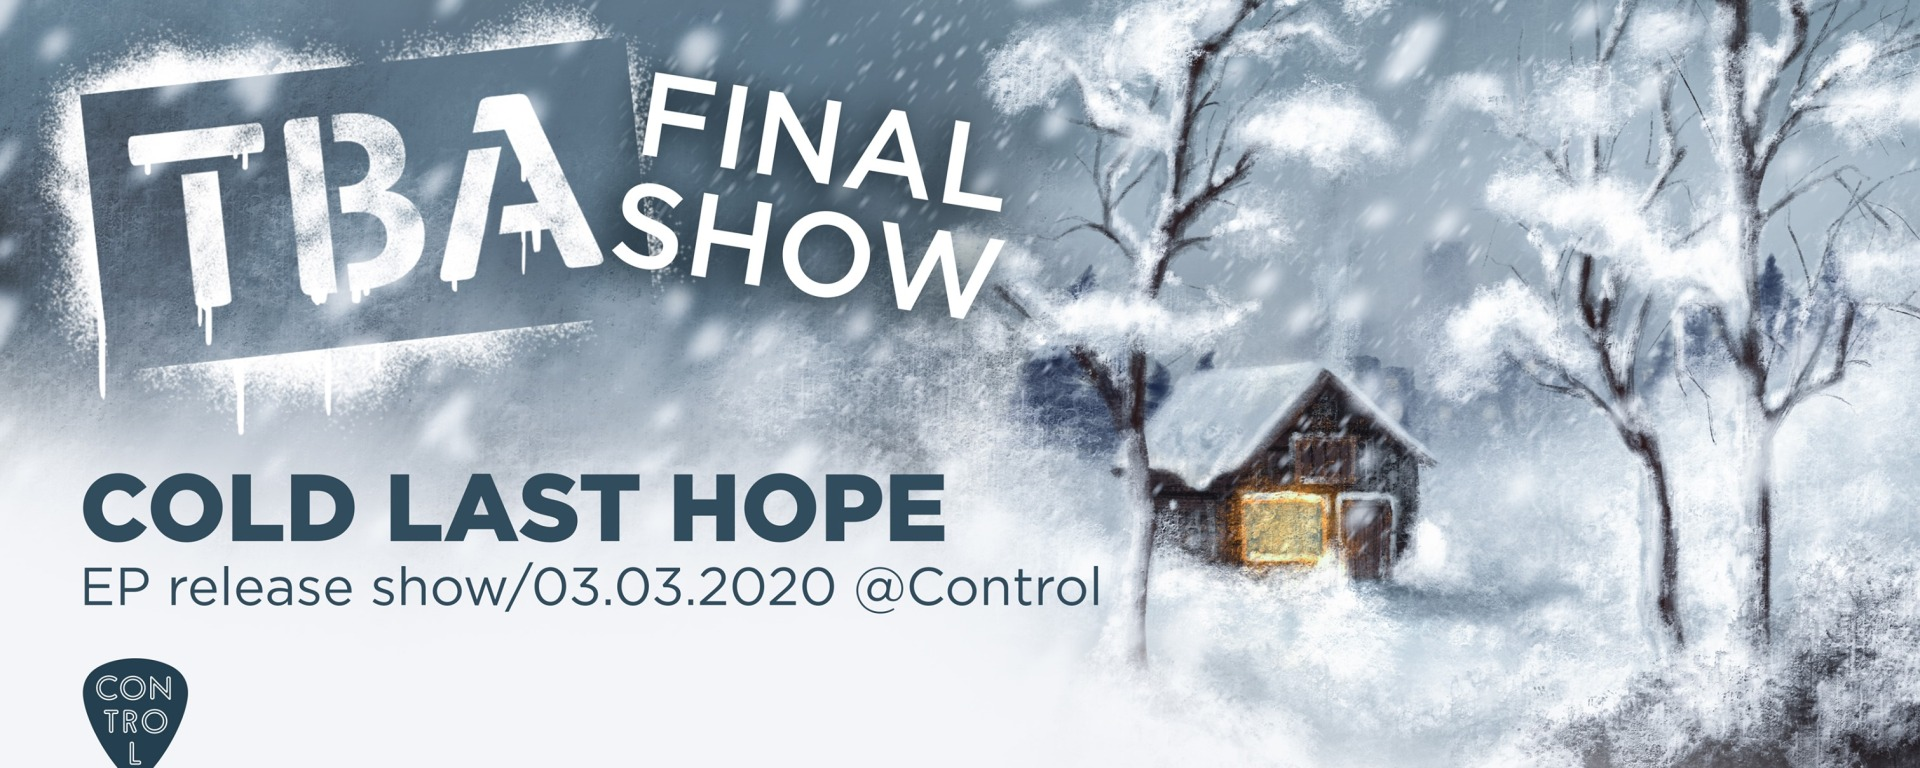 "Concert TBA Live // FINAL SHOW // ""Cold Last Hope"" EP Release in Control"